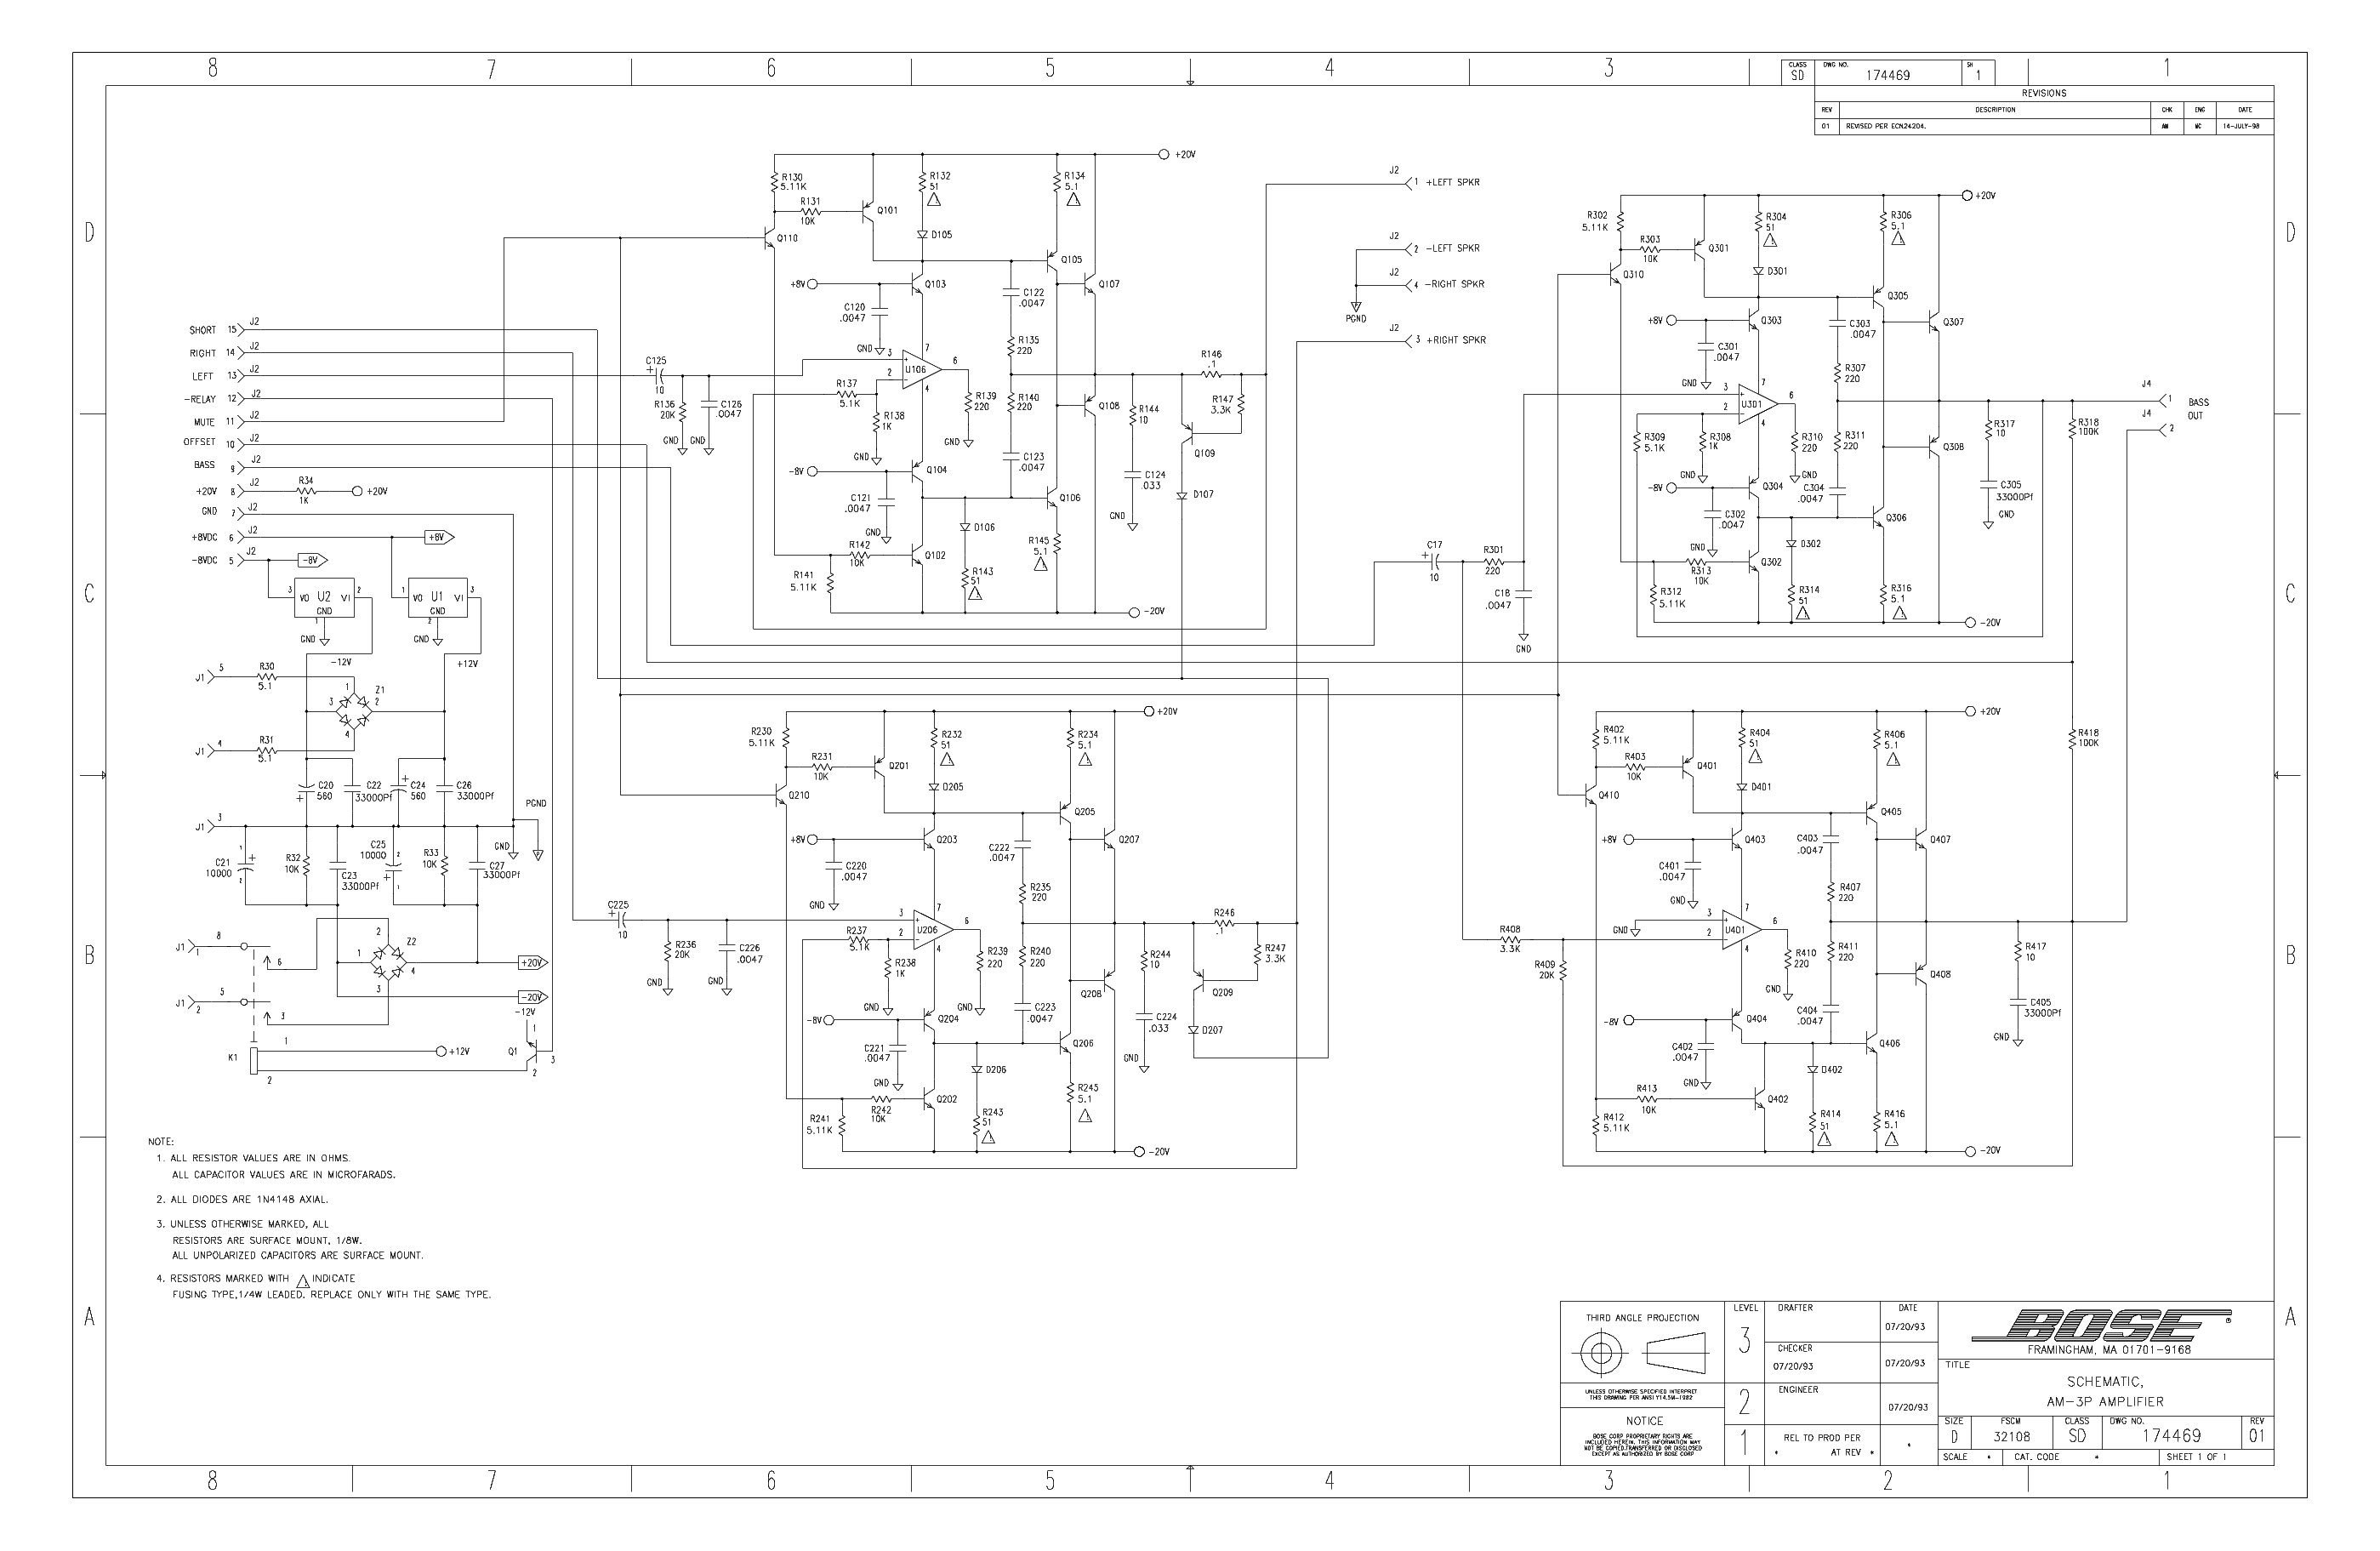 bose sounddock wiring diagram   29 wiring diagram images